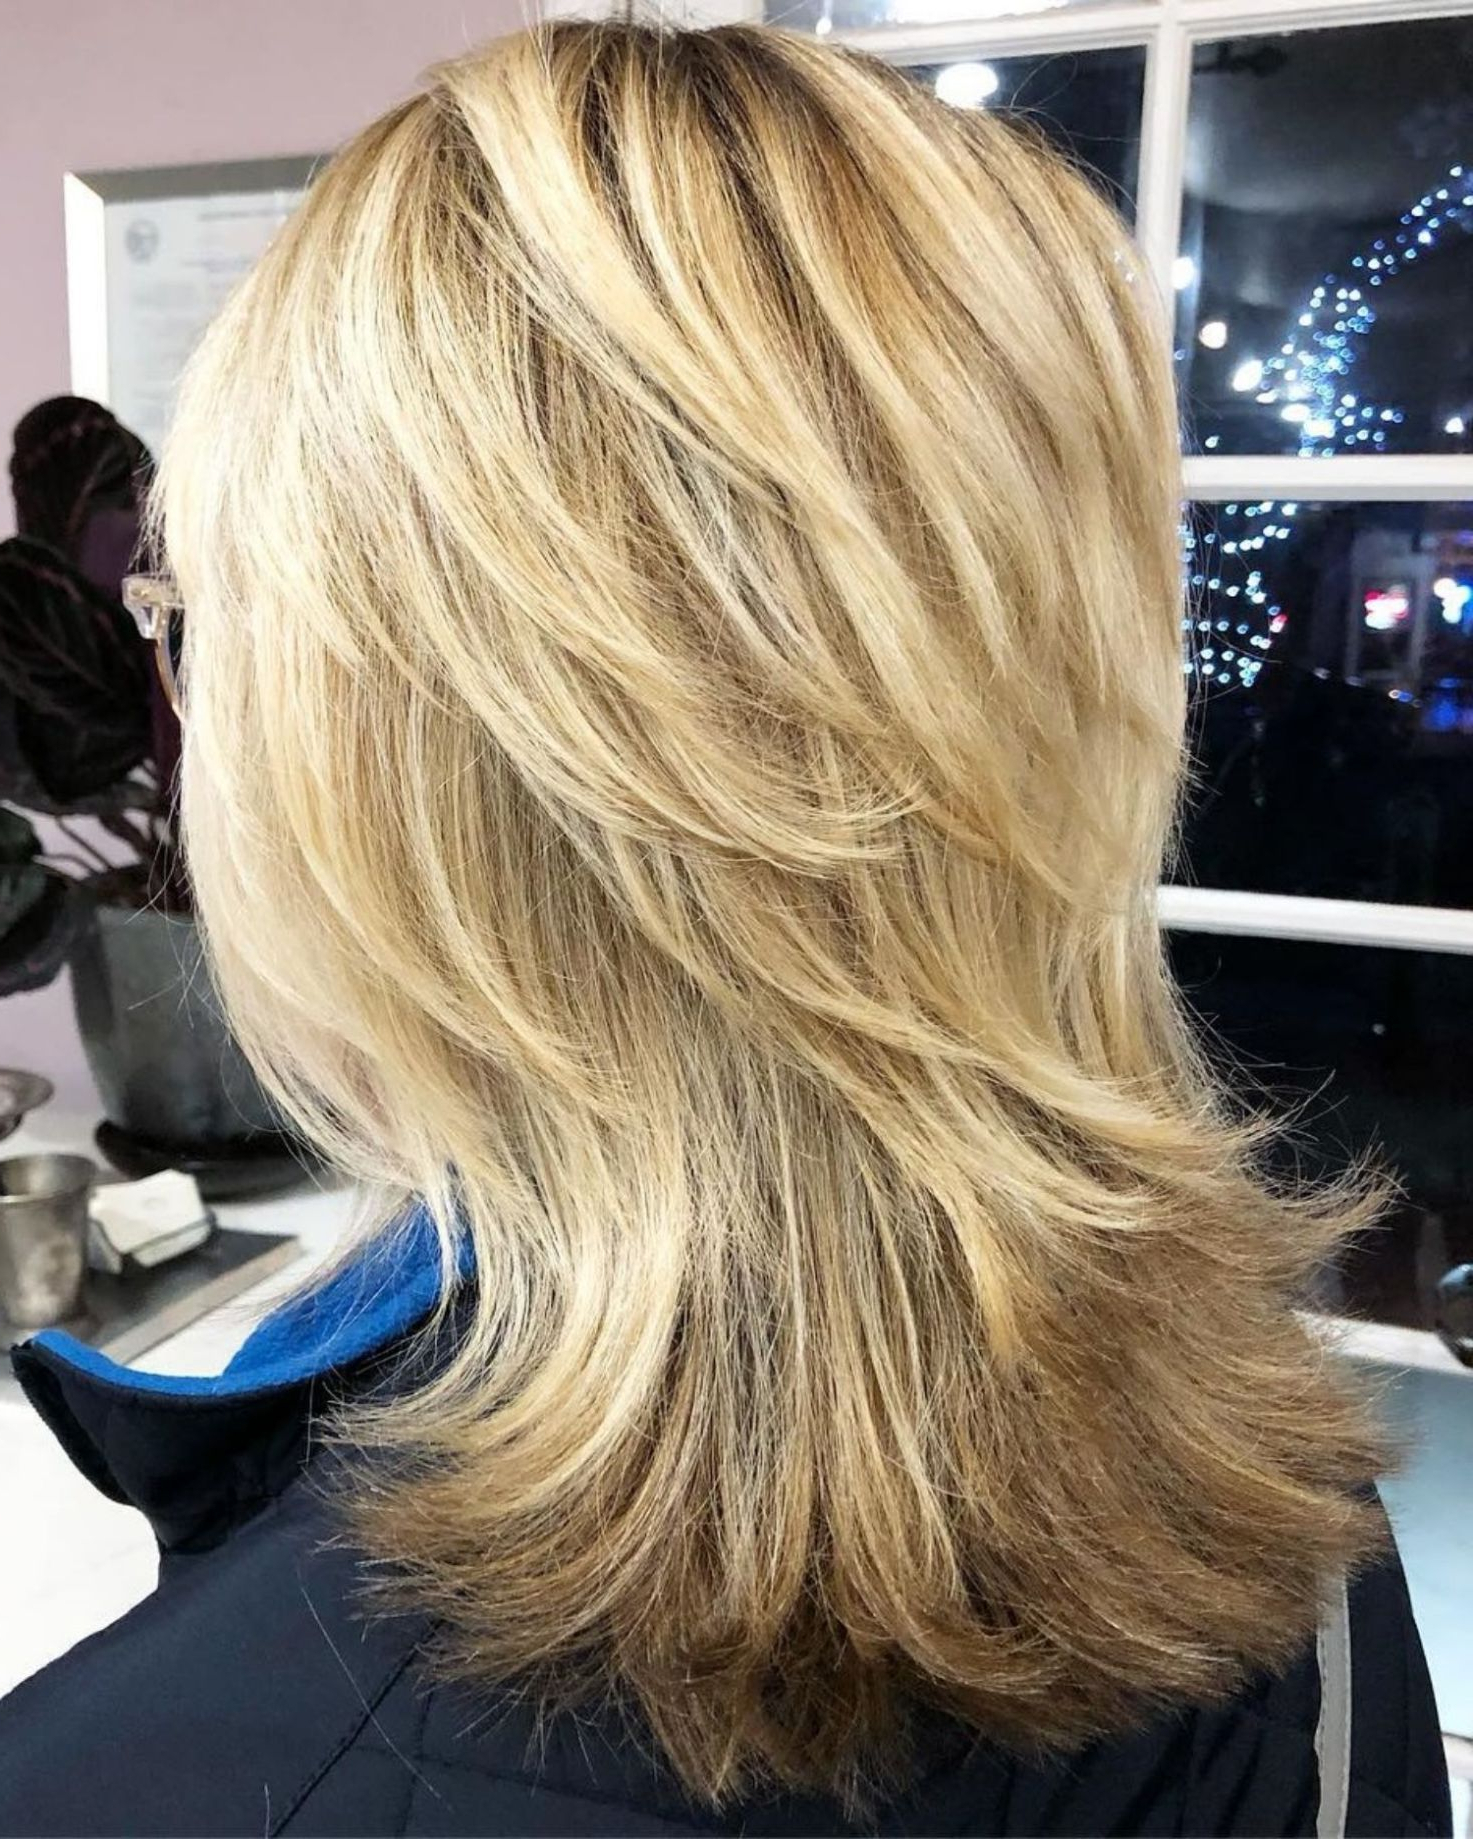 60 Best Variations Of A Medium Shag Haircut For Your Pertaining To Most Popular Medium Haircuts With Feathered Ends (View 3 of 20)